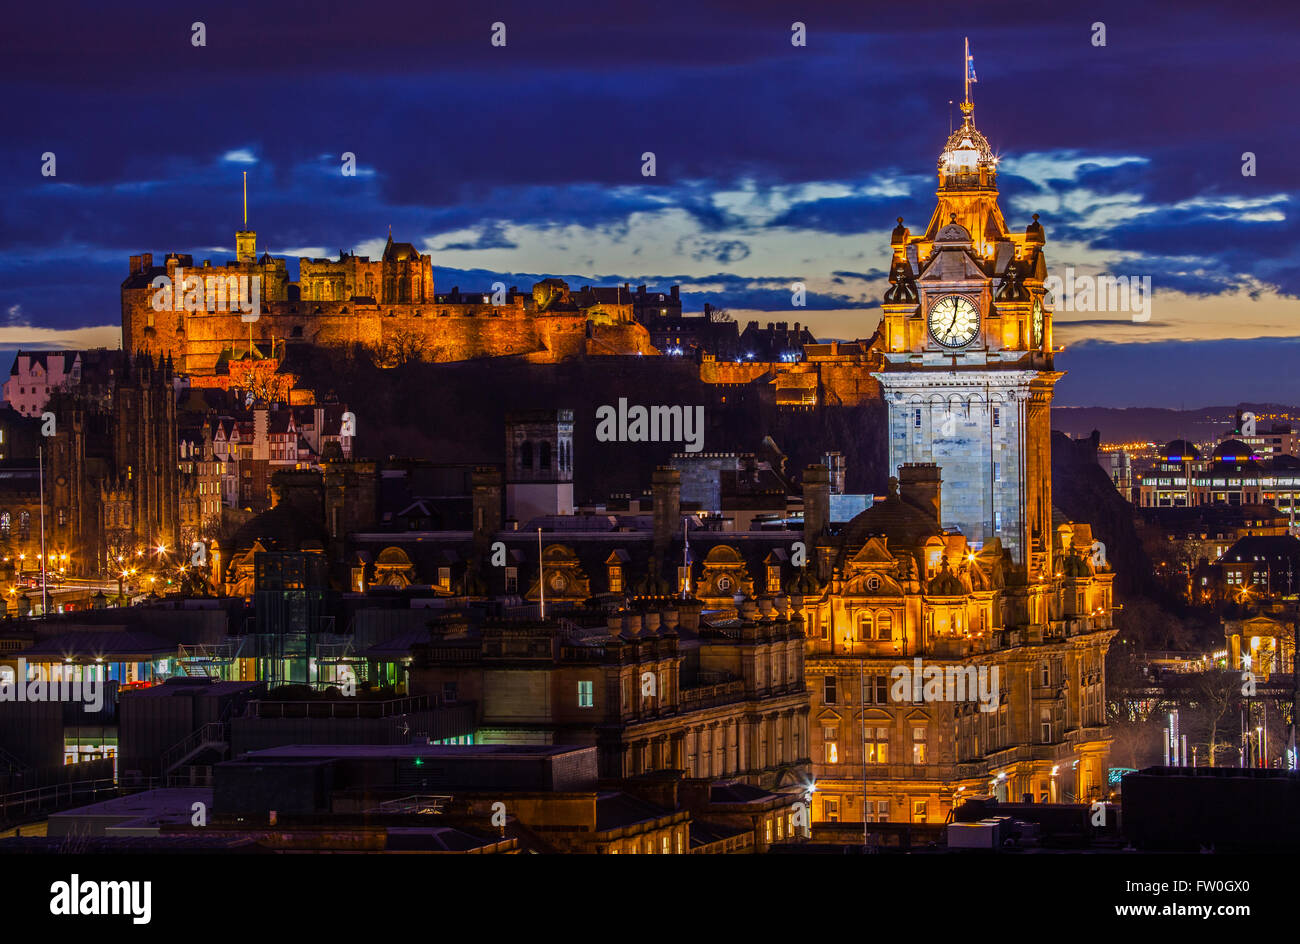 A beautiful view from Calton Hill in Edinburgh, taking in the sights of Edinburgh Castle and the Balmoral Hotel. - Stock Image